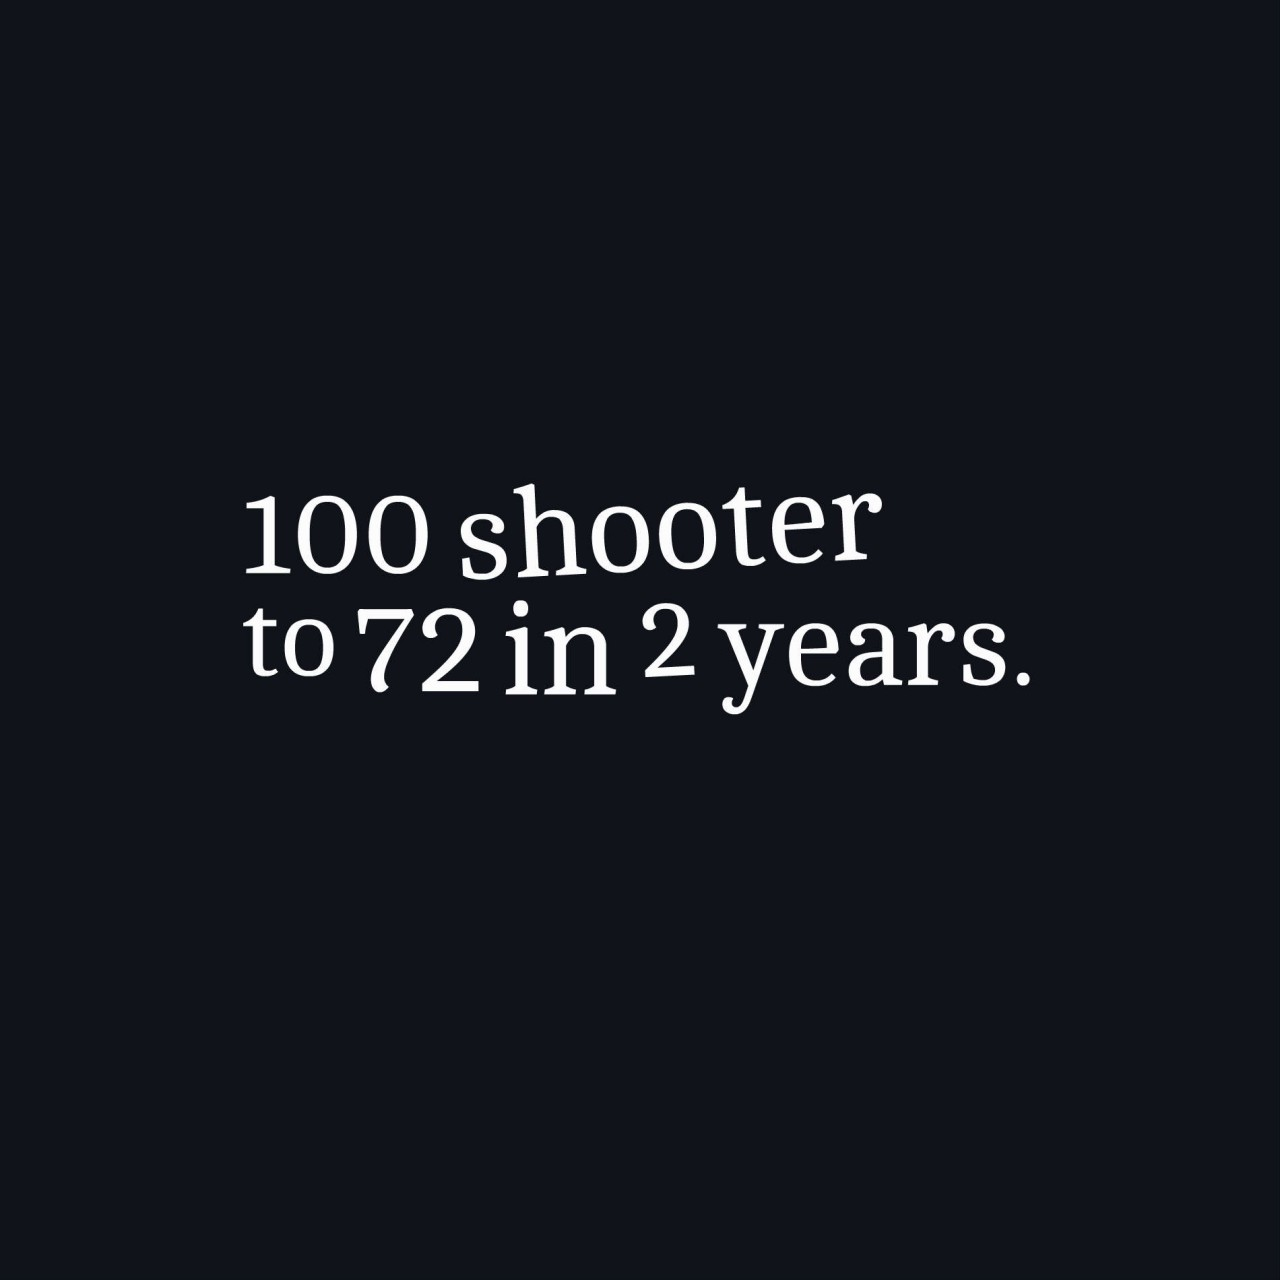 100 shooter to 72 in 2 years.